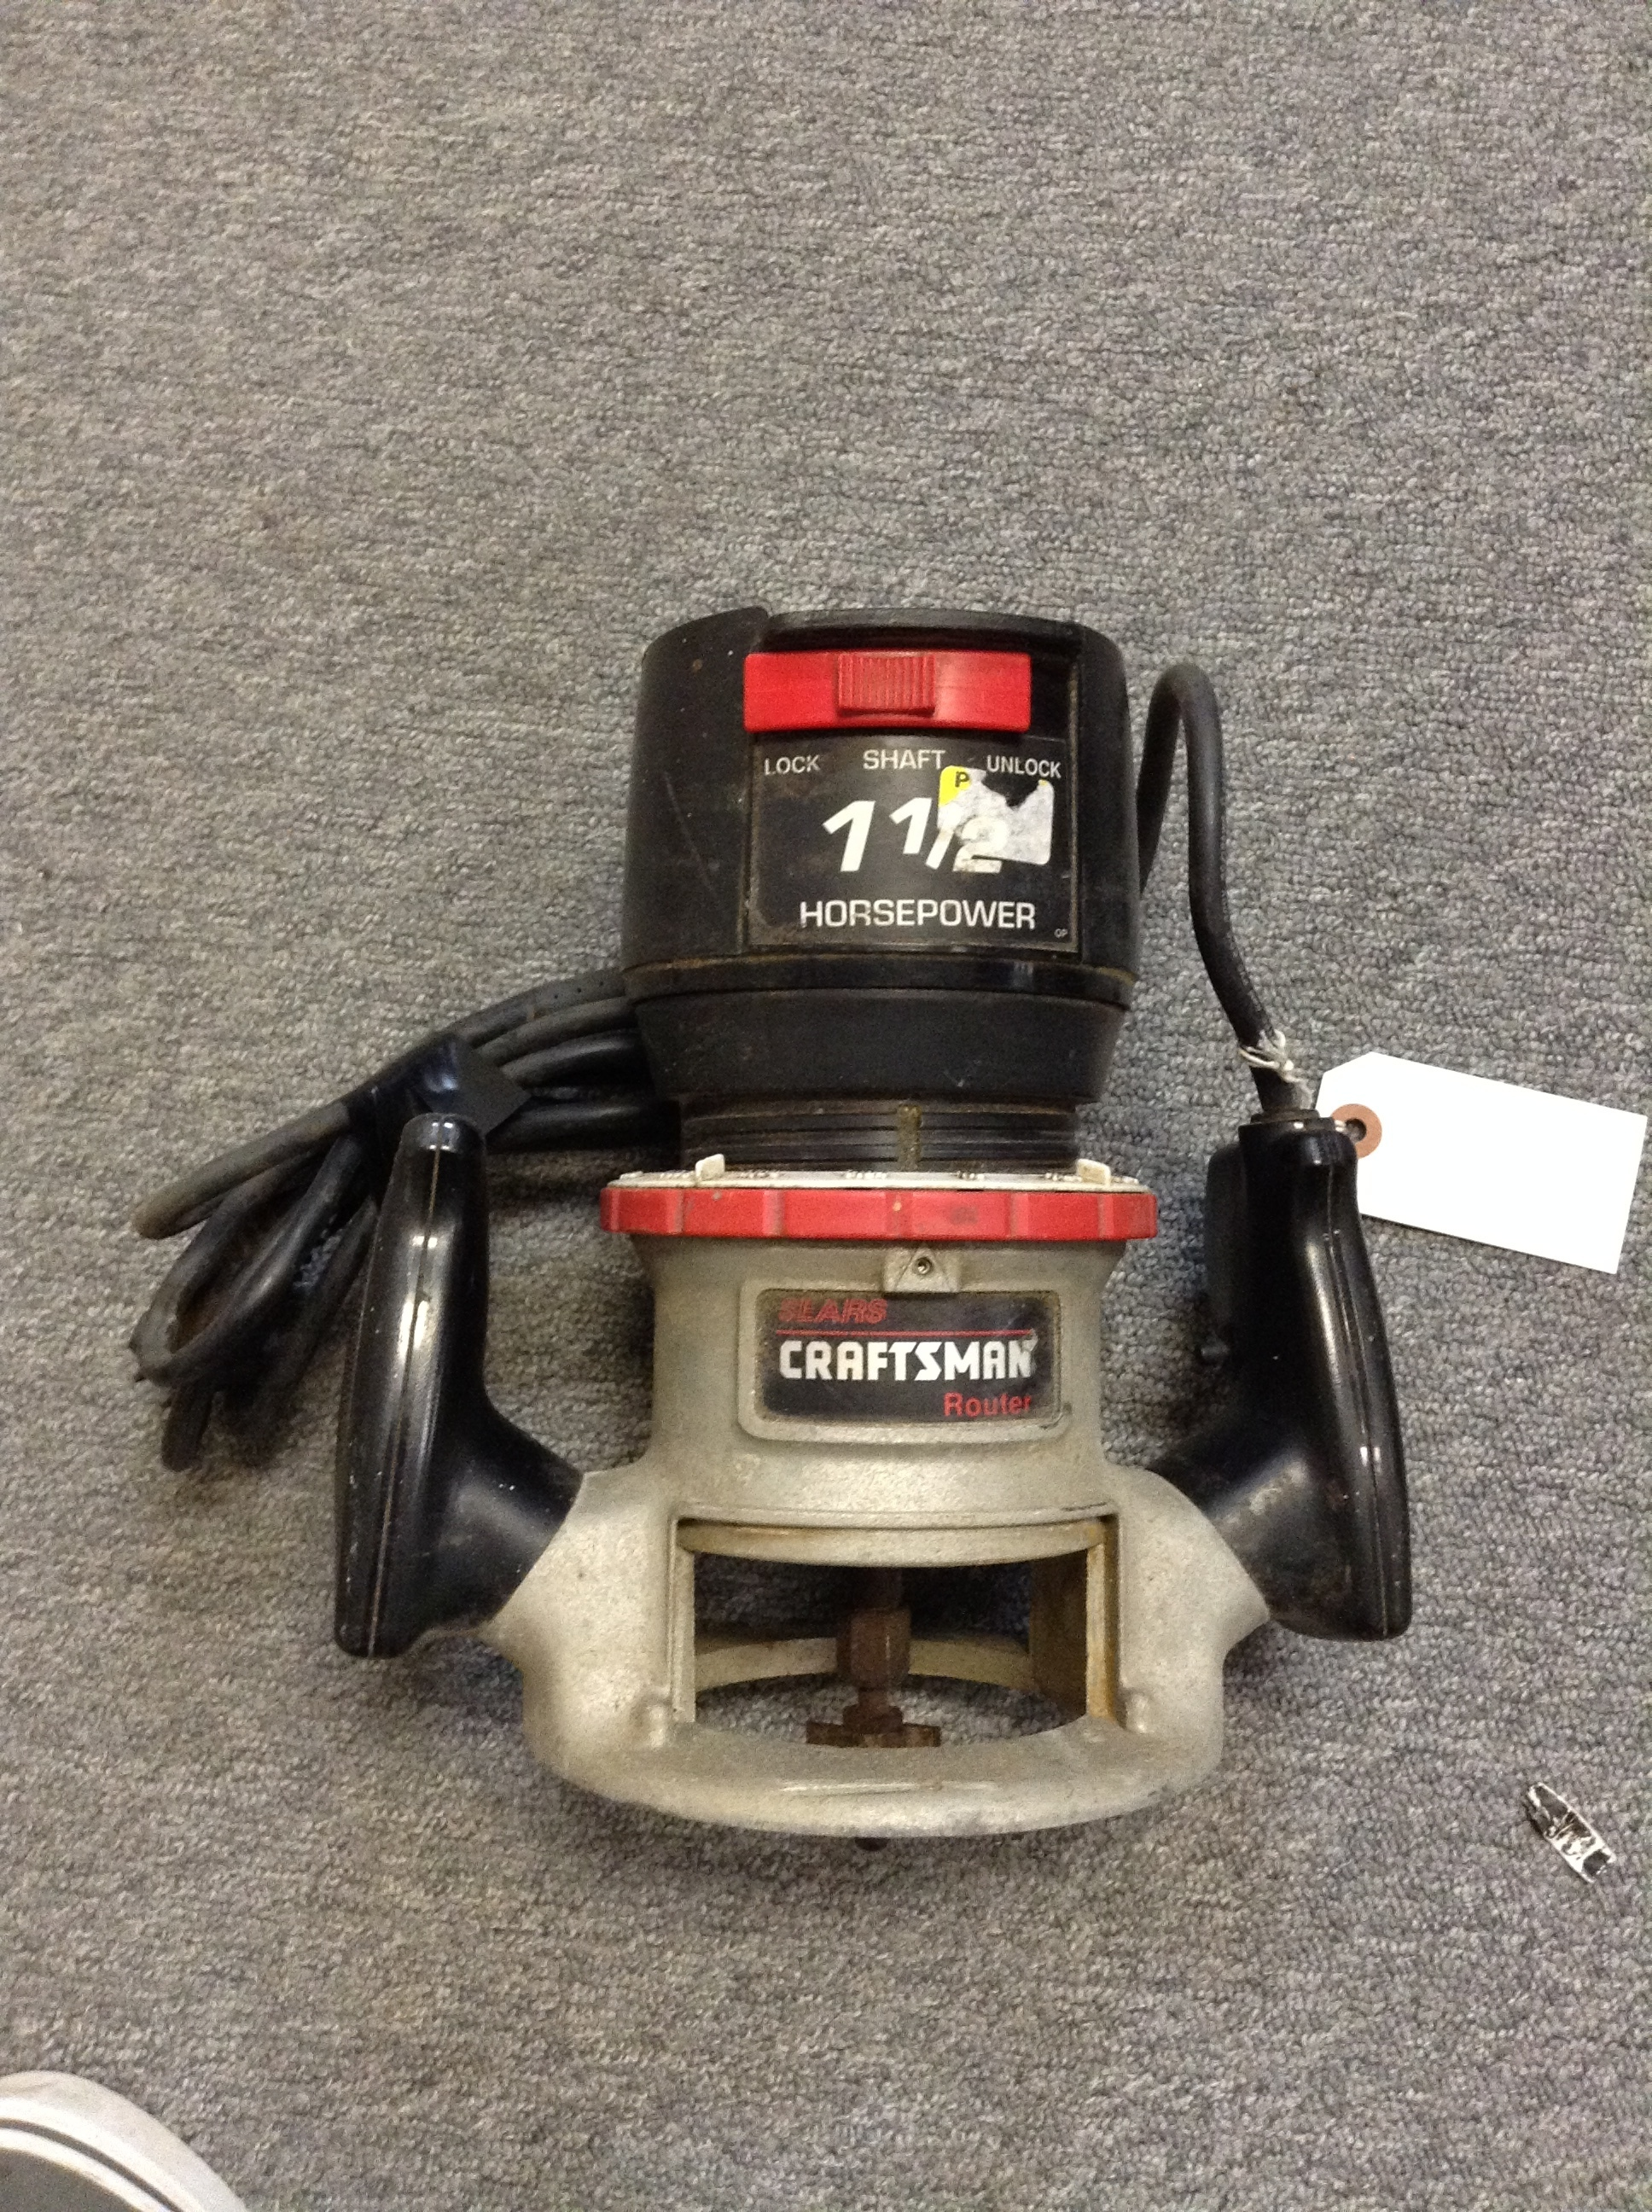 CRAFTSMAN - 315.174921 - ROUTER TOOLS